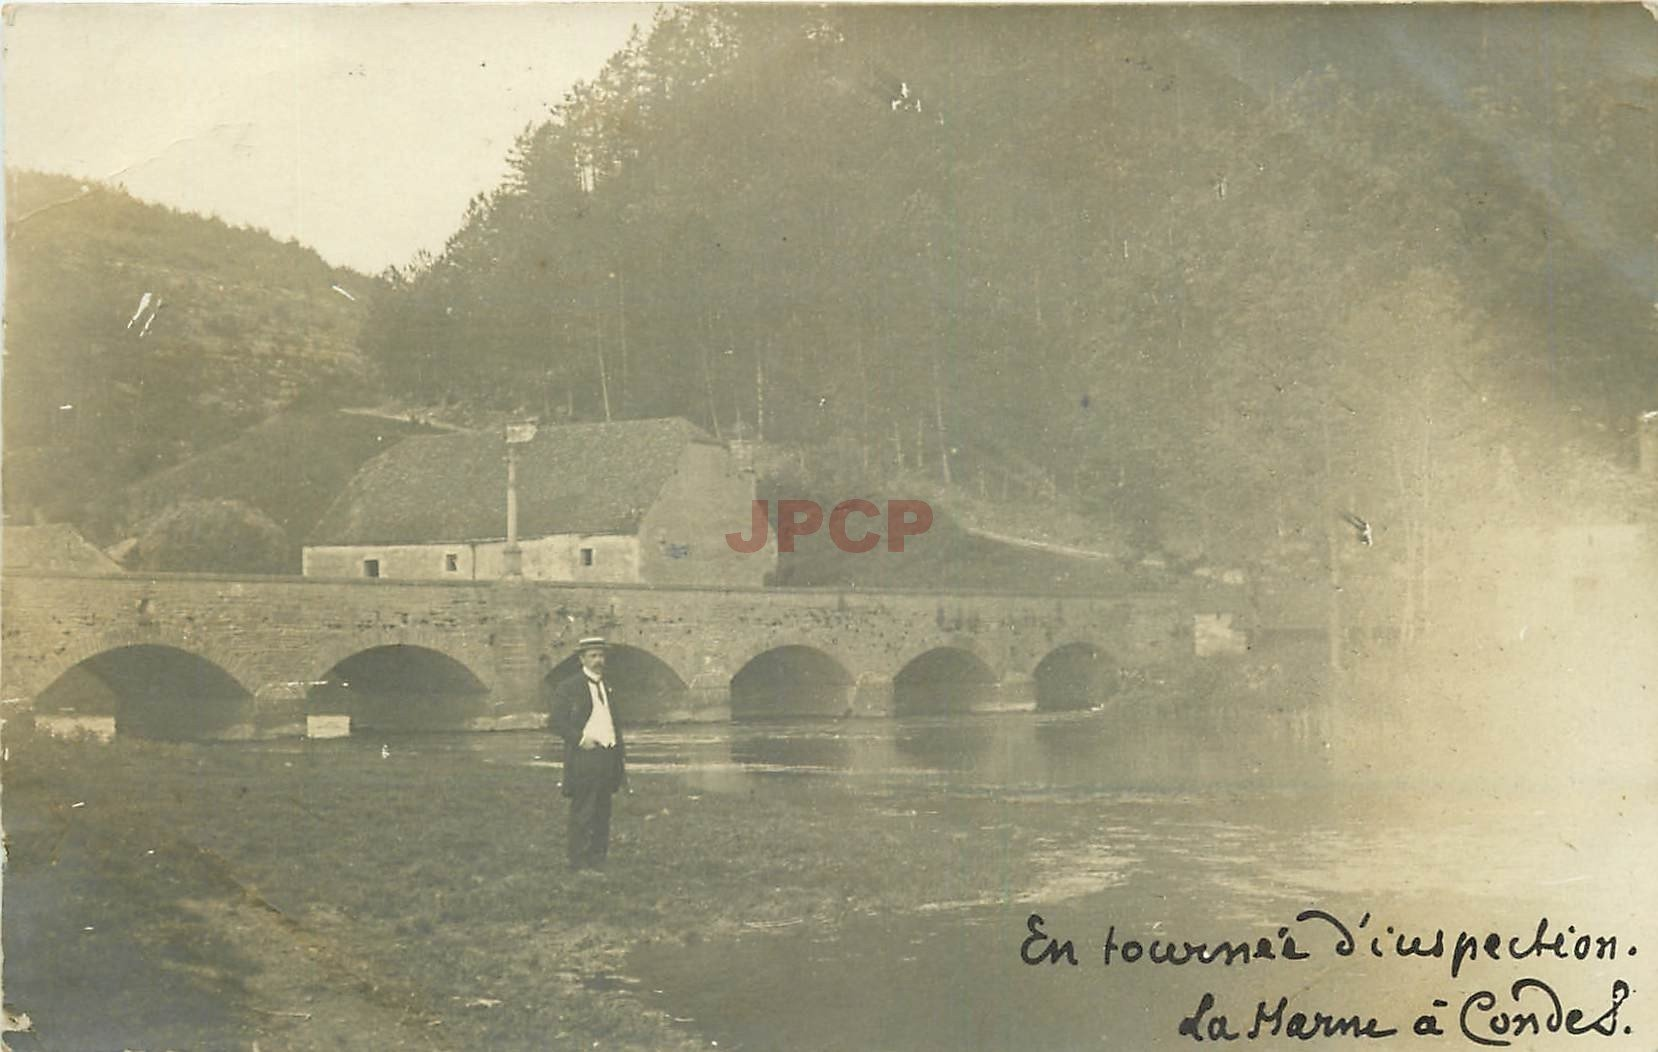 WW 52 CHAUMONT. En tournée d'inspection de la Marne à Condes. Photo carte postale 1910